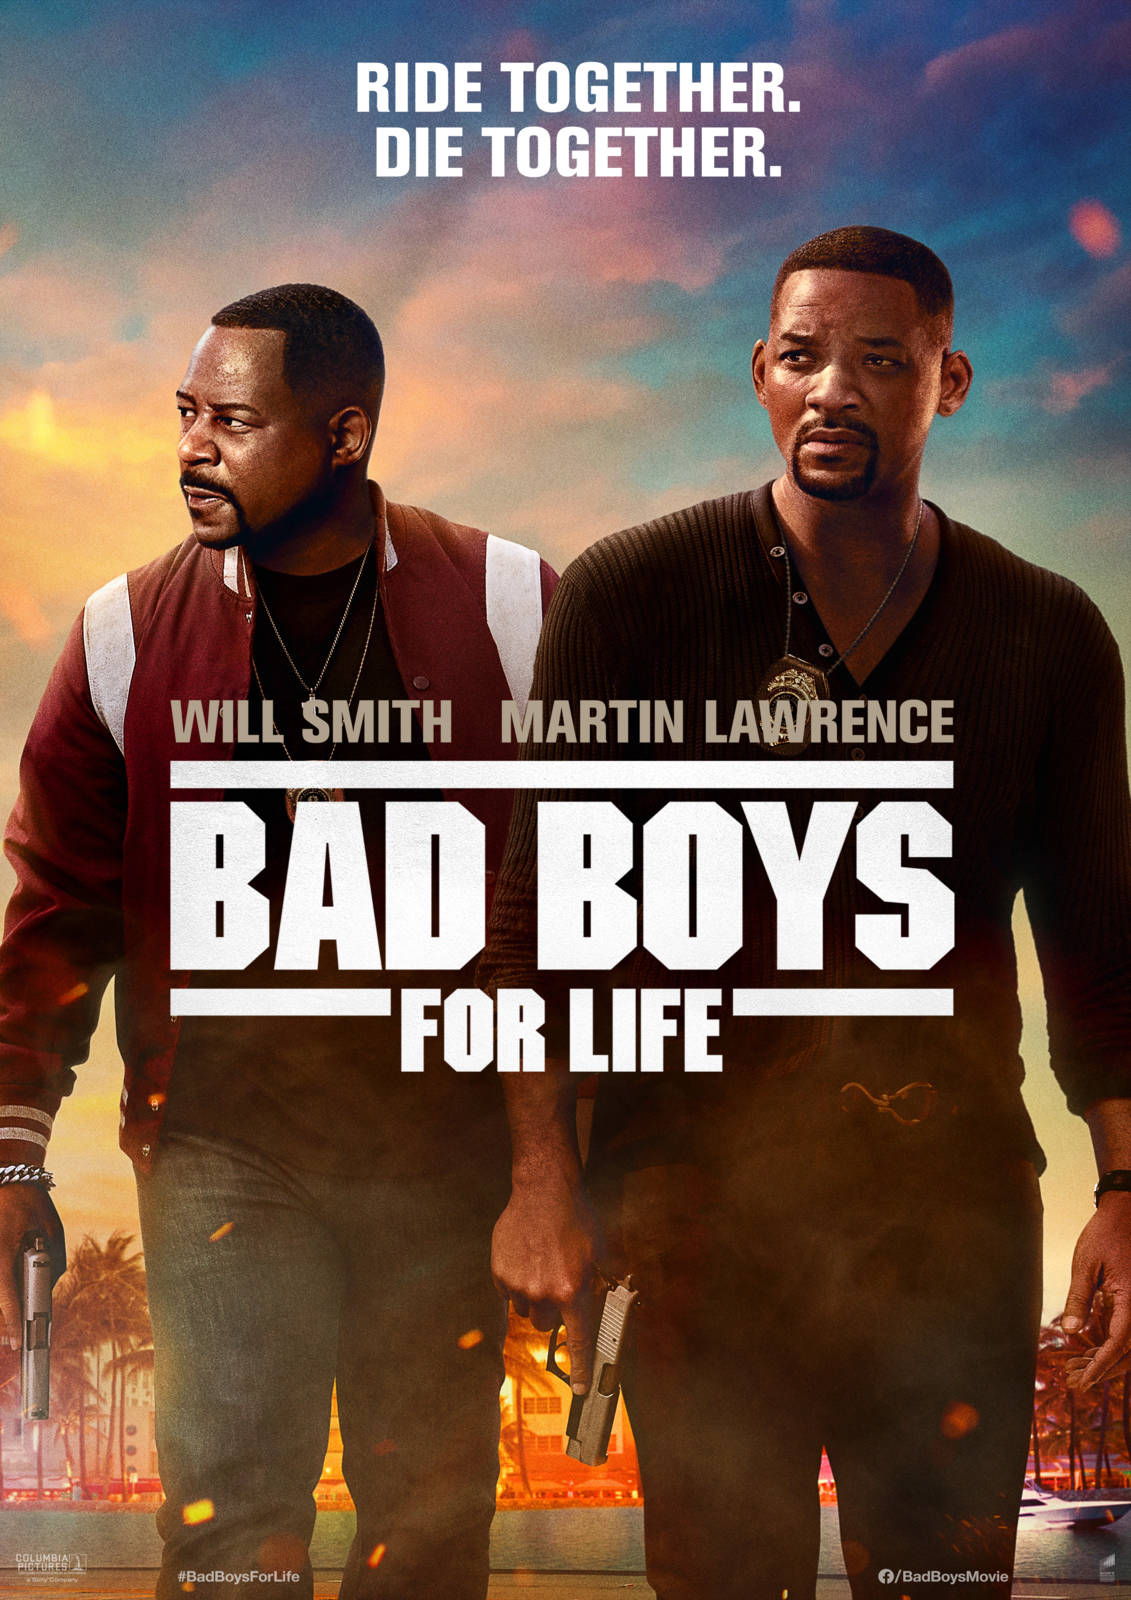 Bad Boys for Life Marcus Burnett is now a police inspector and Mike Lowery is in a midlife crisis. They unite again when an Albanian mercenary, whose brother they killed, promises them an important bonus.